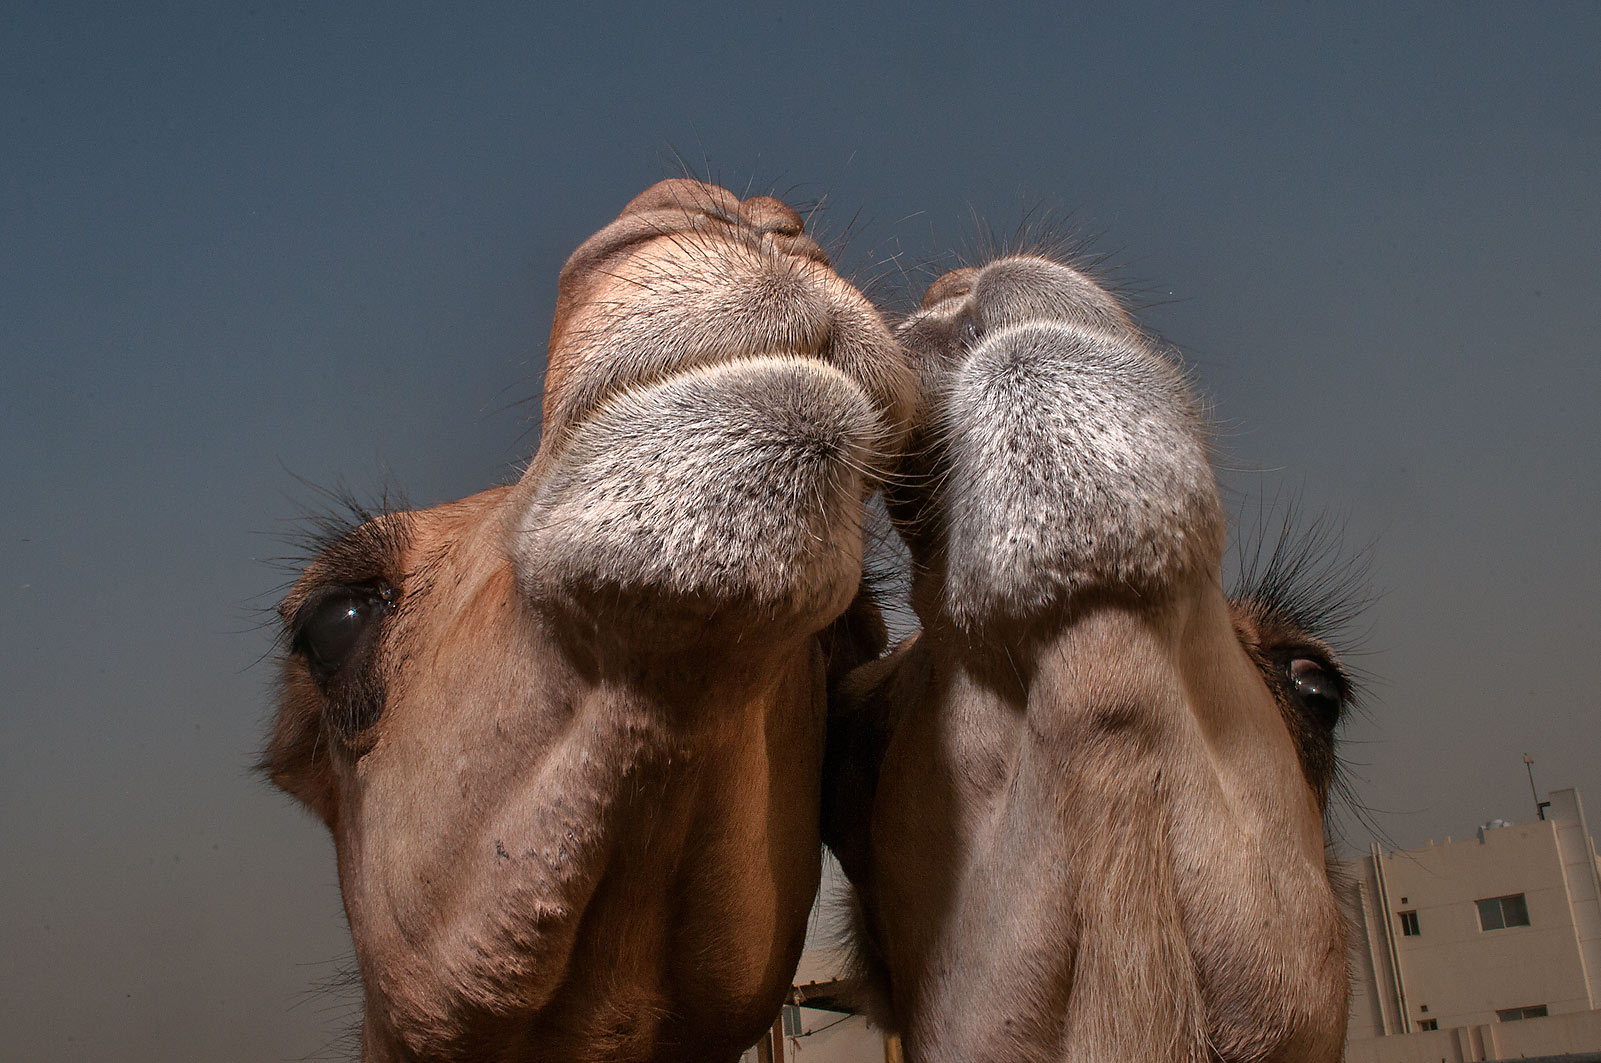 Pair of camels in Livestock Market, Wholesale Markets area. Doha, Qatar